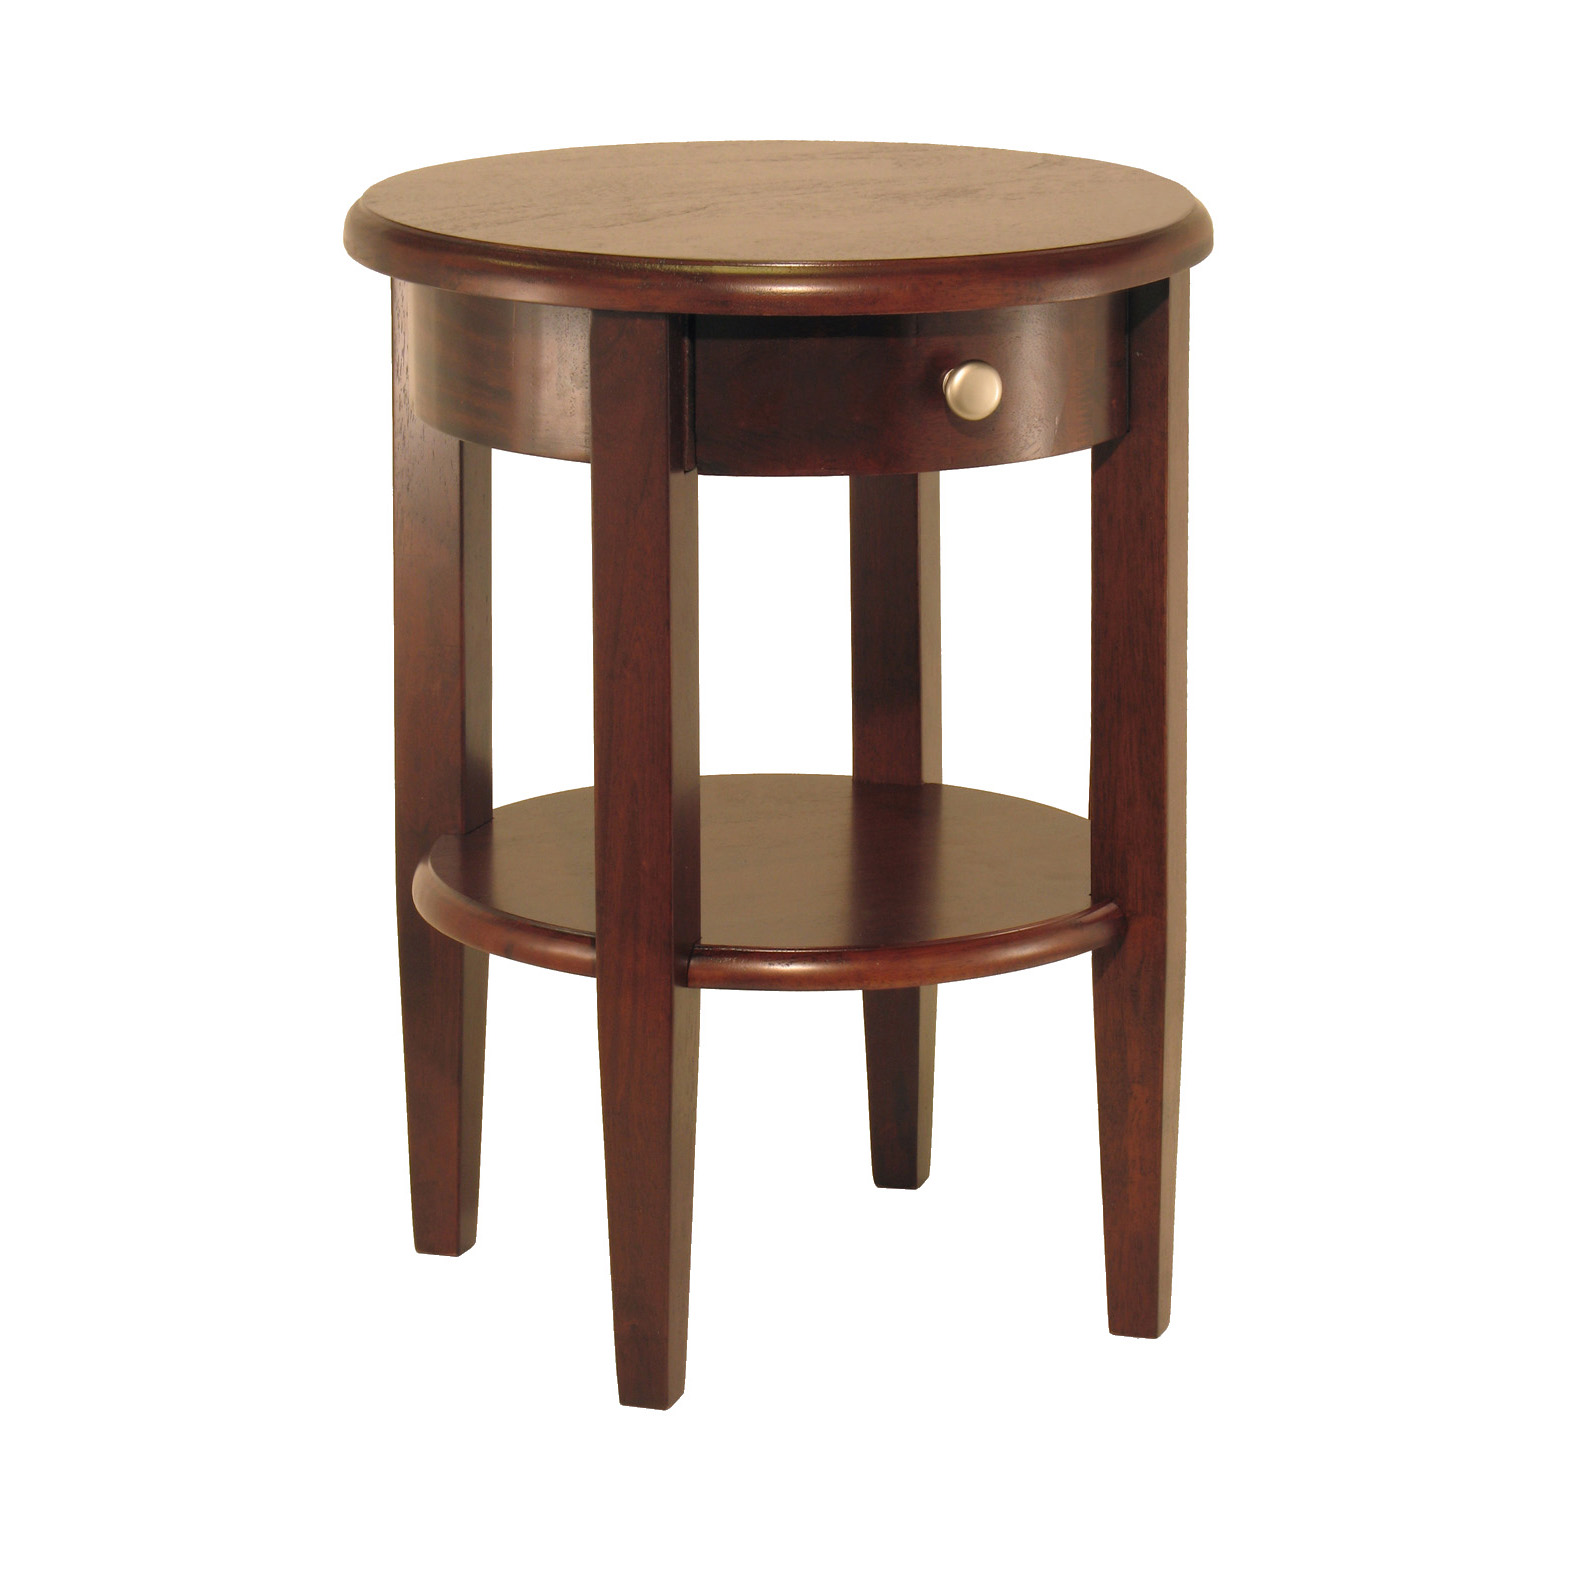 Winsome Wood Concord Accent Table w/ Drawer and Shelf, Walnut Finish